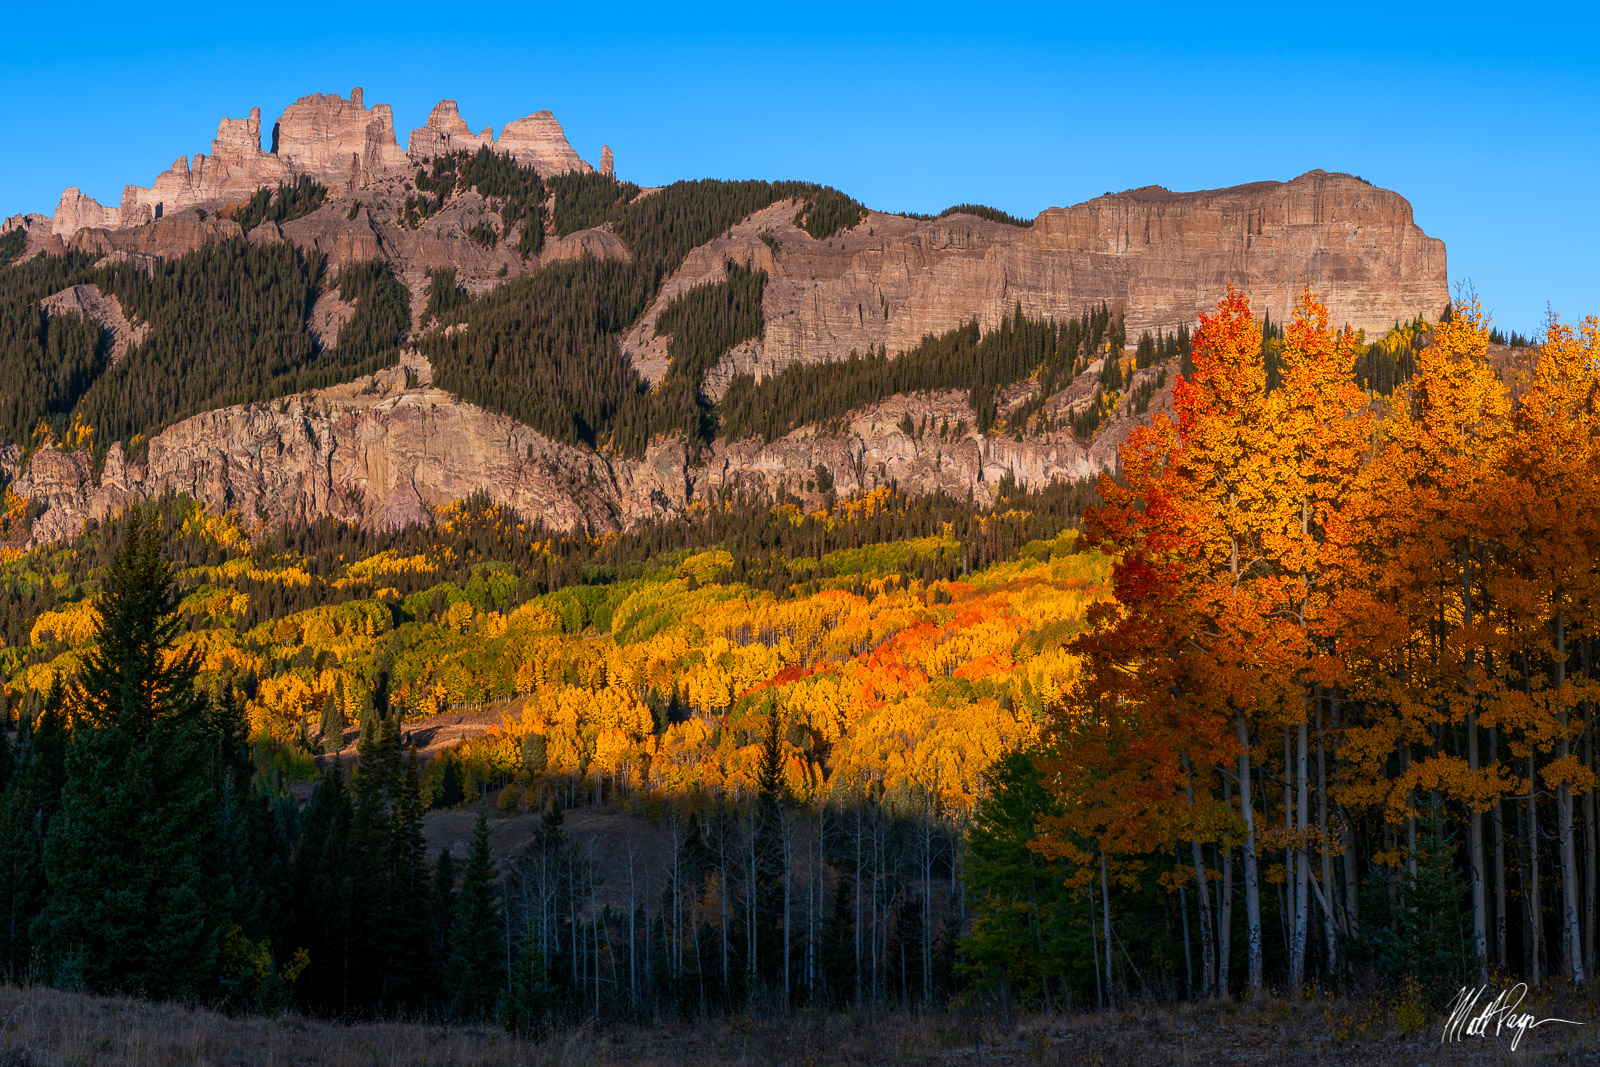 Alpenglow, Aspen Trees, Autumn, Blue Hour, Colorado, Crested Butte, Fall Colors, Gunnison, Mountains, Ohio Pass, Sunrise, The Castles, West Elk Mountains, photo